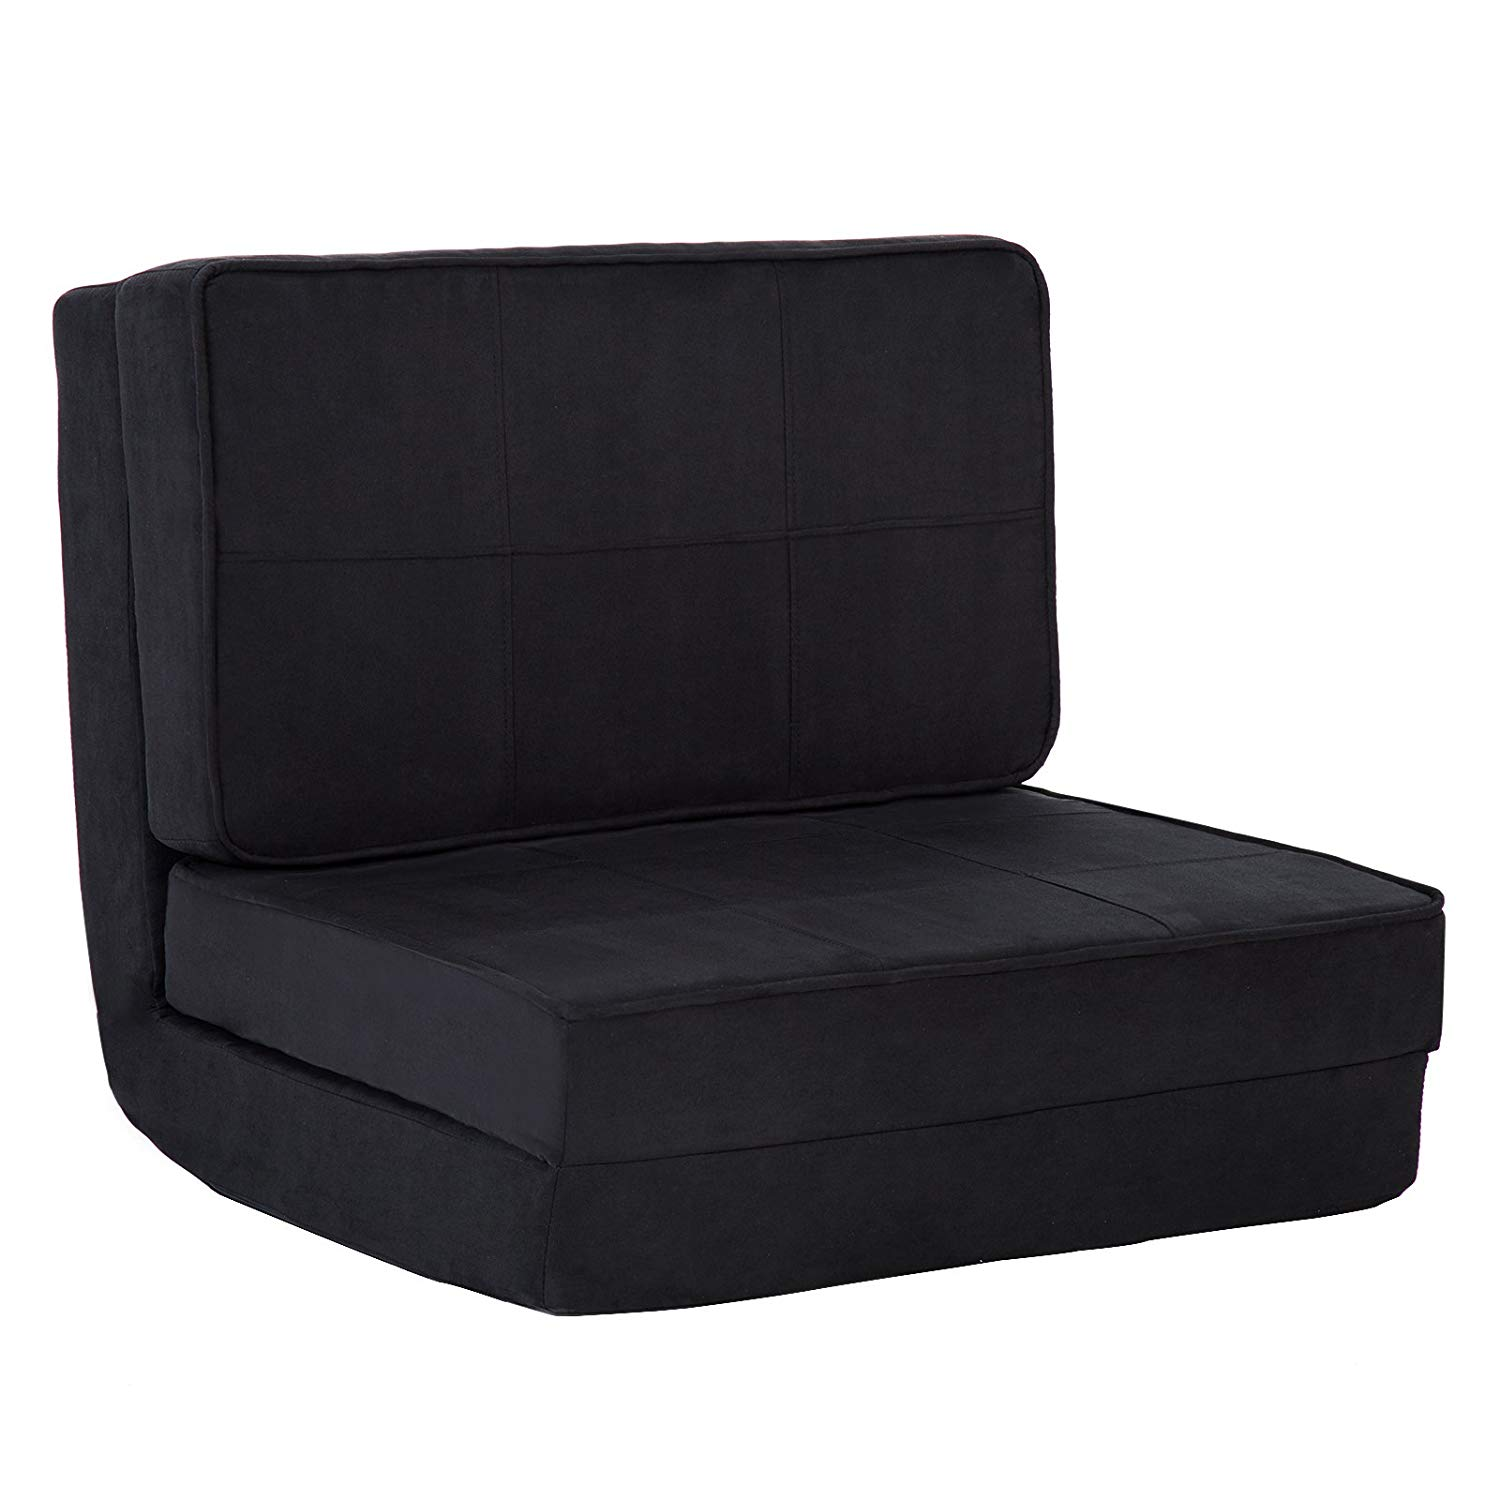 Mecor Sofa Bed Fold Down Chair Flip Out Lounge Convertible Sleeper Bed Black